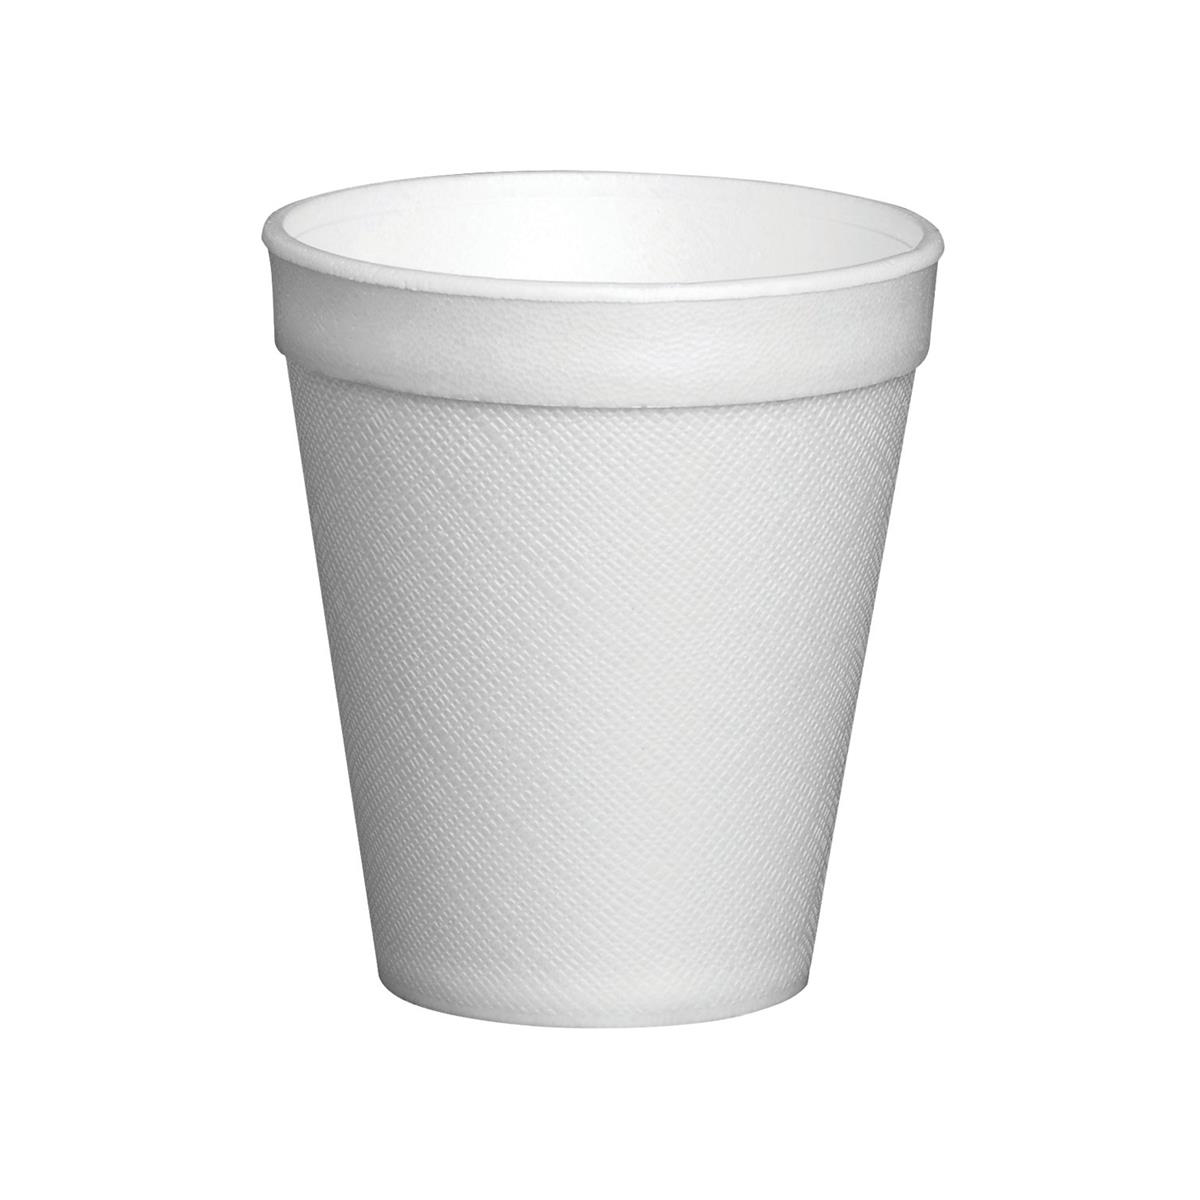 Disposable Cups & Accessories Cup Insulated Foam EPS Polystyrene 7oz 207ml White Ref 7LX6 Pack 25